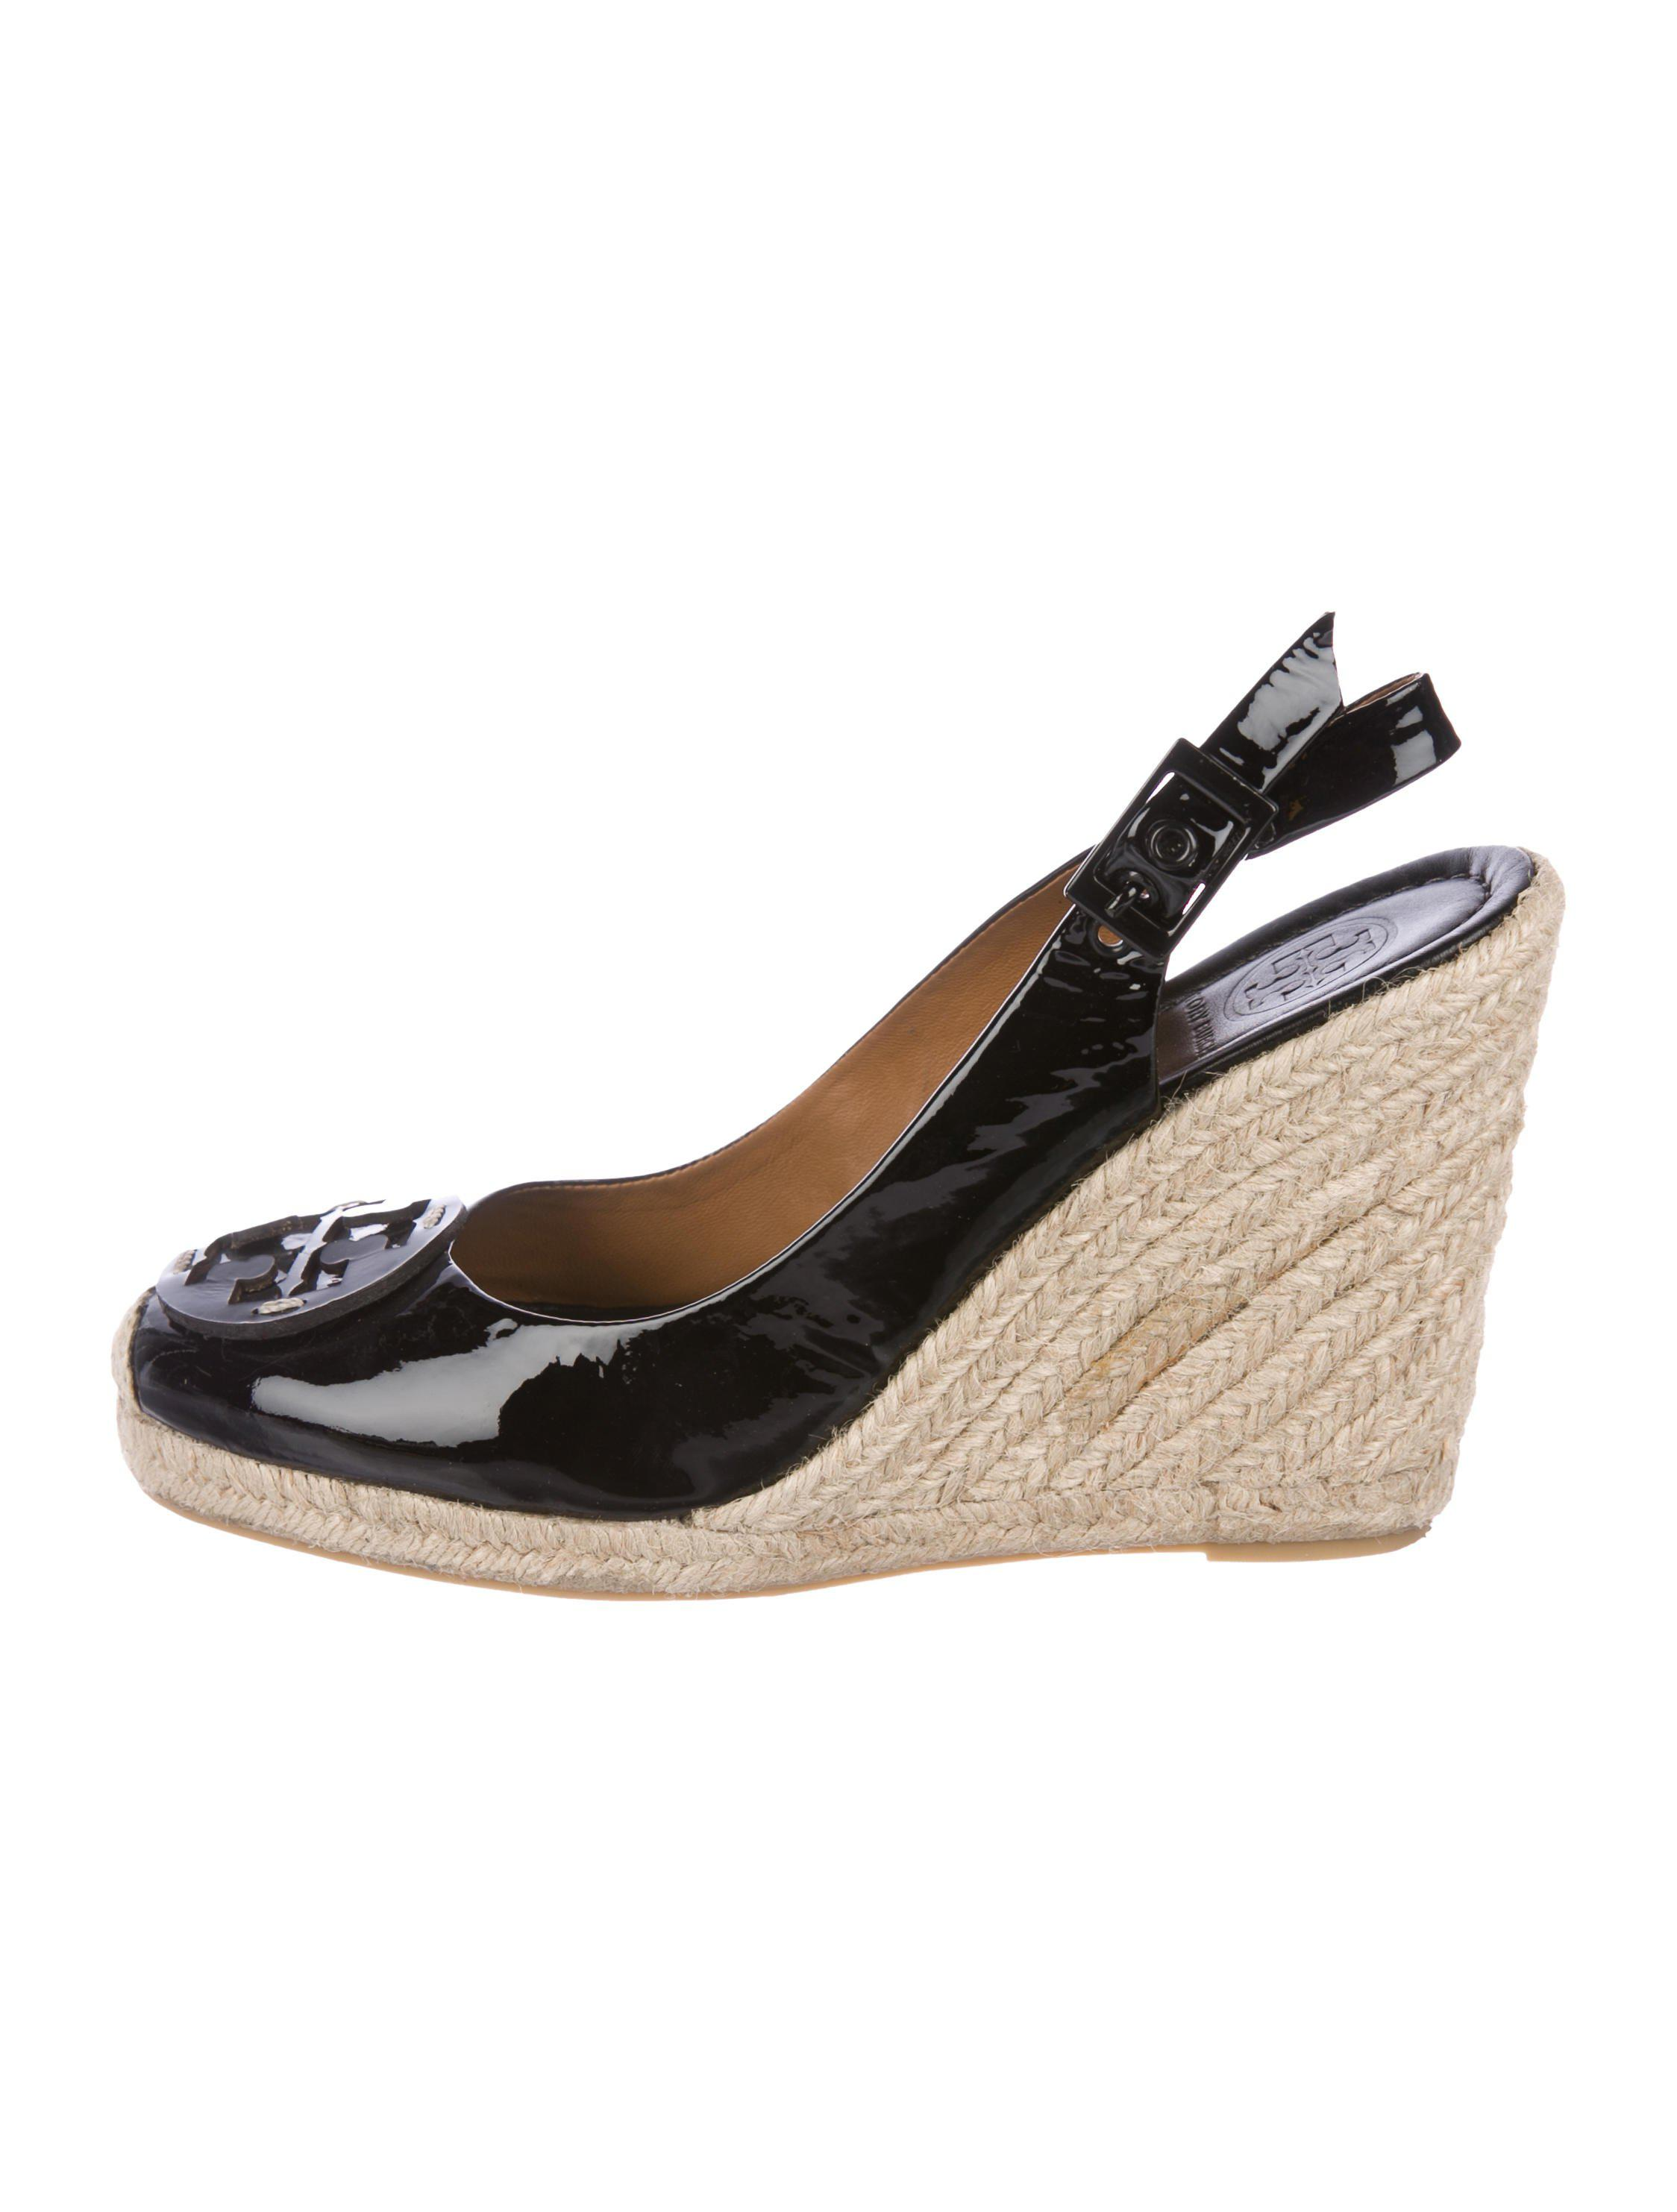 7c32ef41f Lyst - Tory Burch Patent Leather Espadrille Wedges in Black